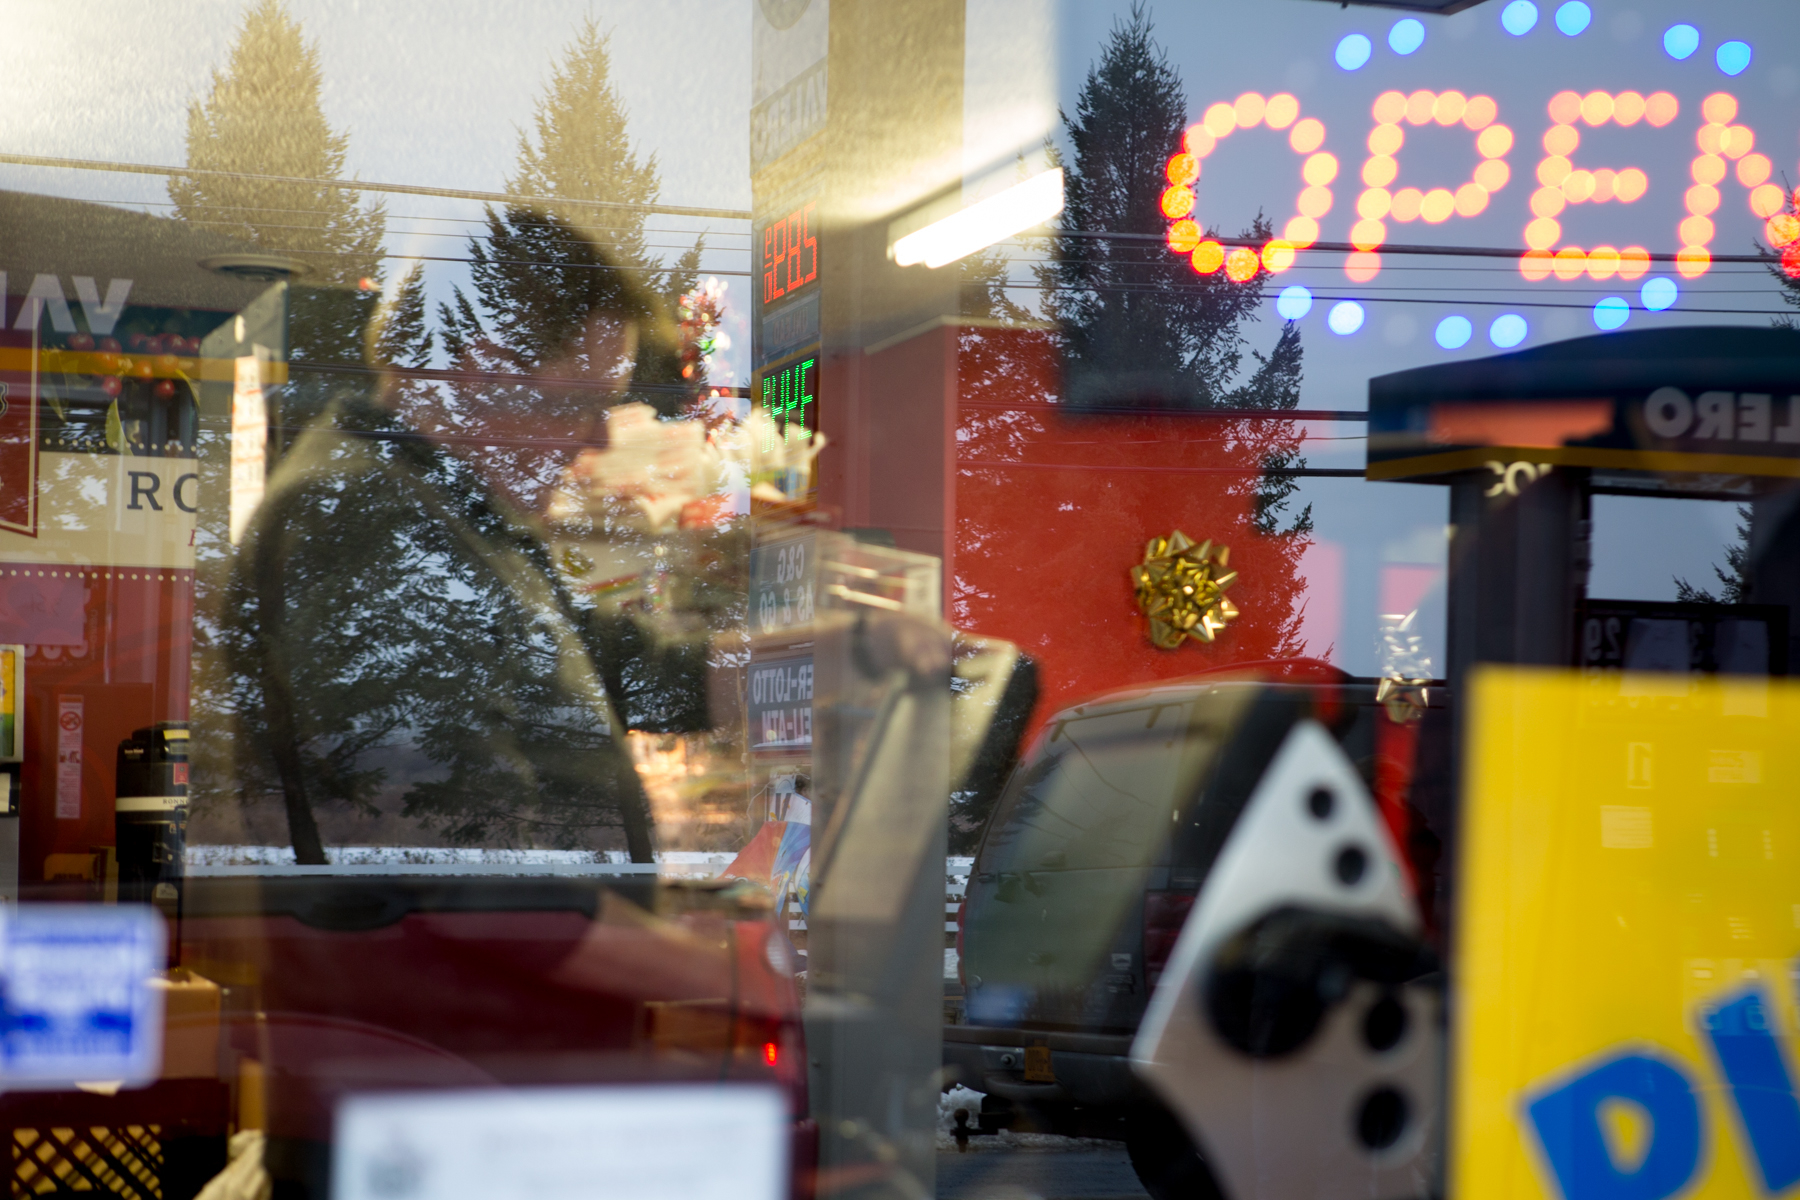 Clair Milburn, 71, mans the cash register after his shift change with his brother, Gary Milburn, at the C&G Gas & Go, Leroy, N.Y., Dec. 14, 2014. Clair and Gary each work 6 days a week at the shop they opened in May 2014.